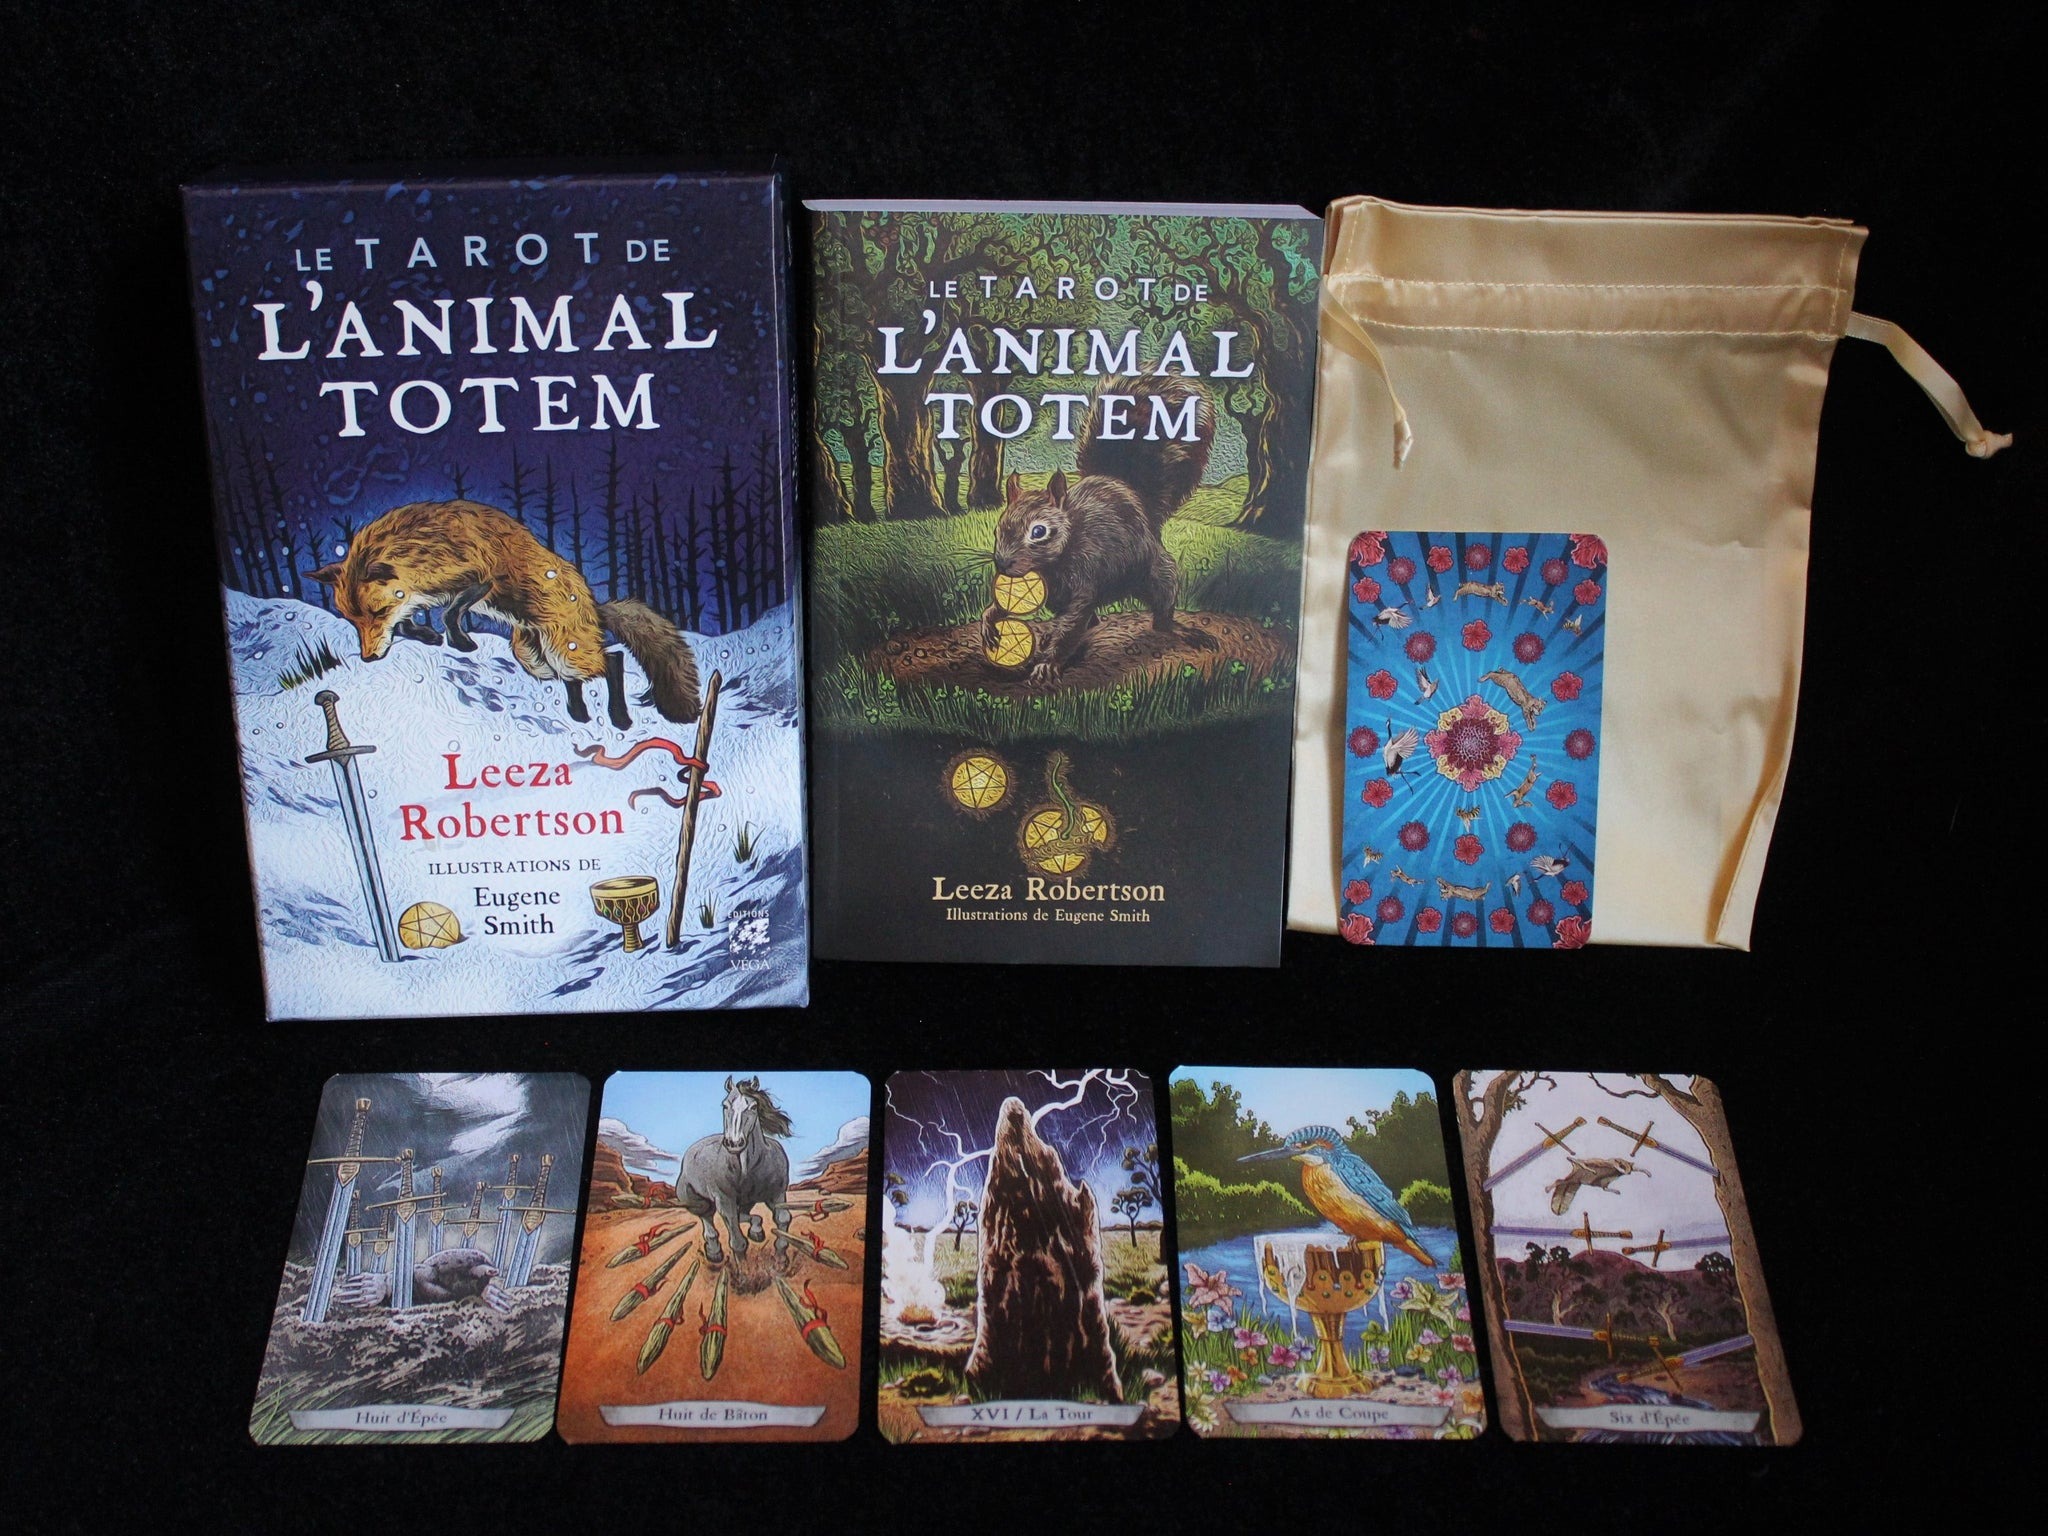 Le Tarot de l'Animal Totem